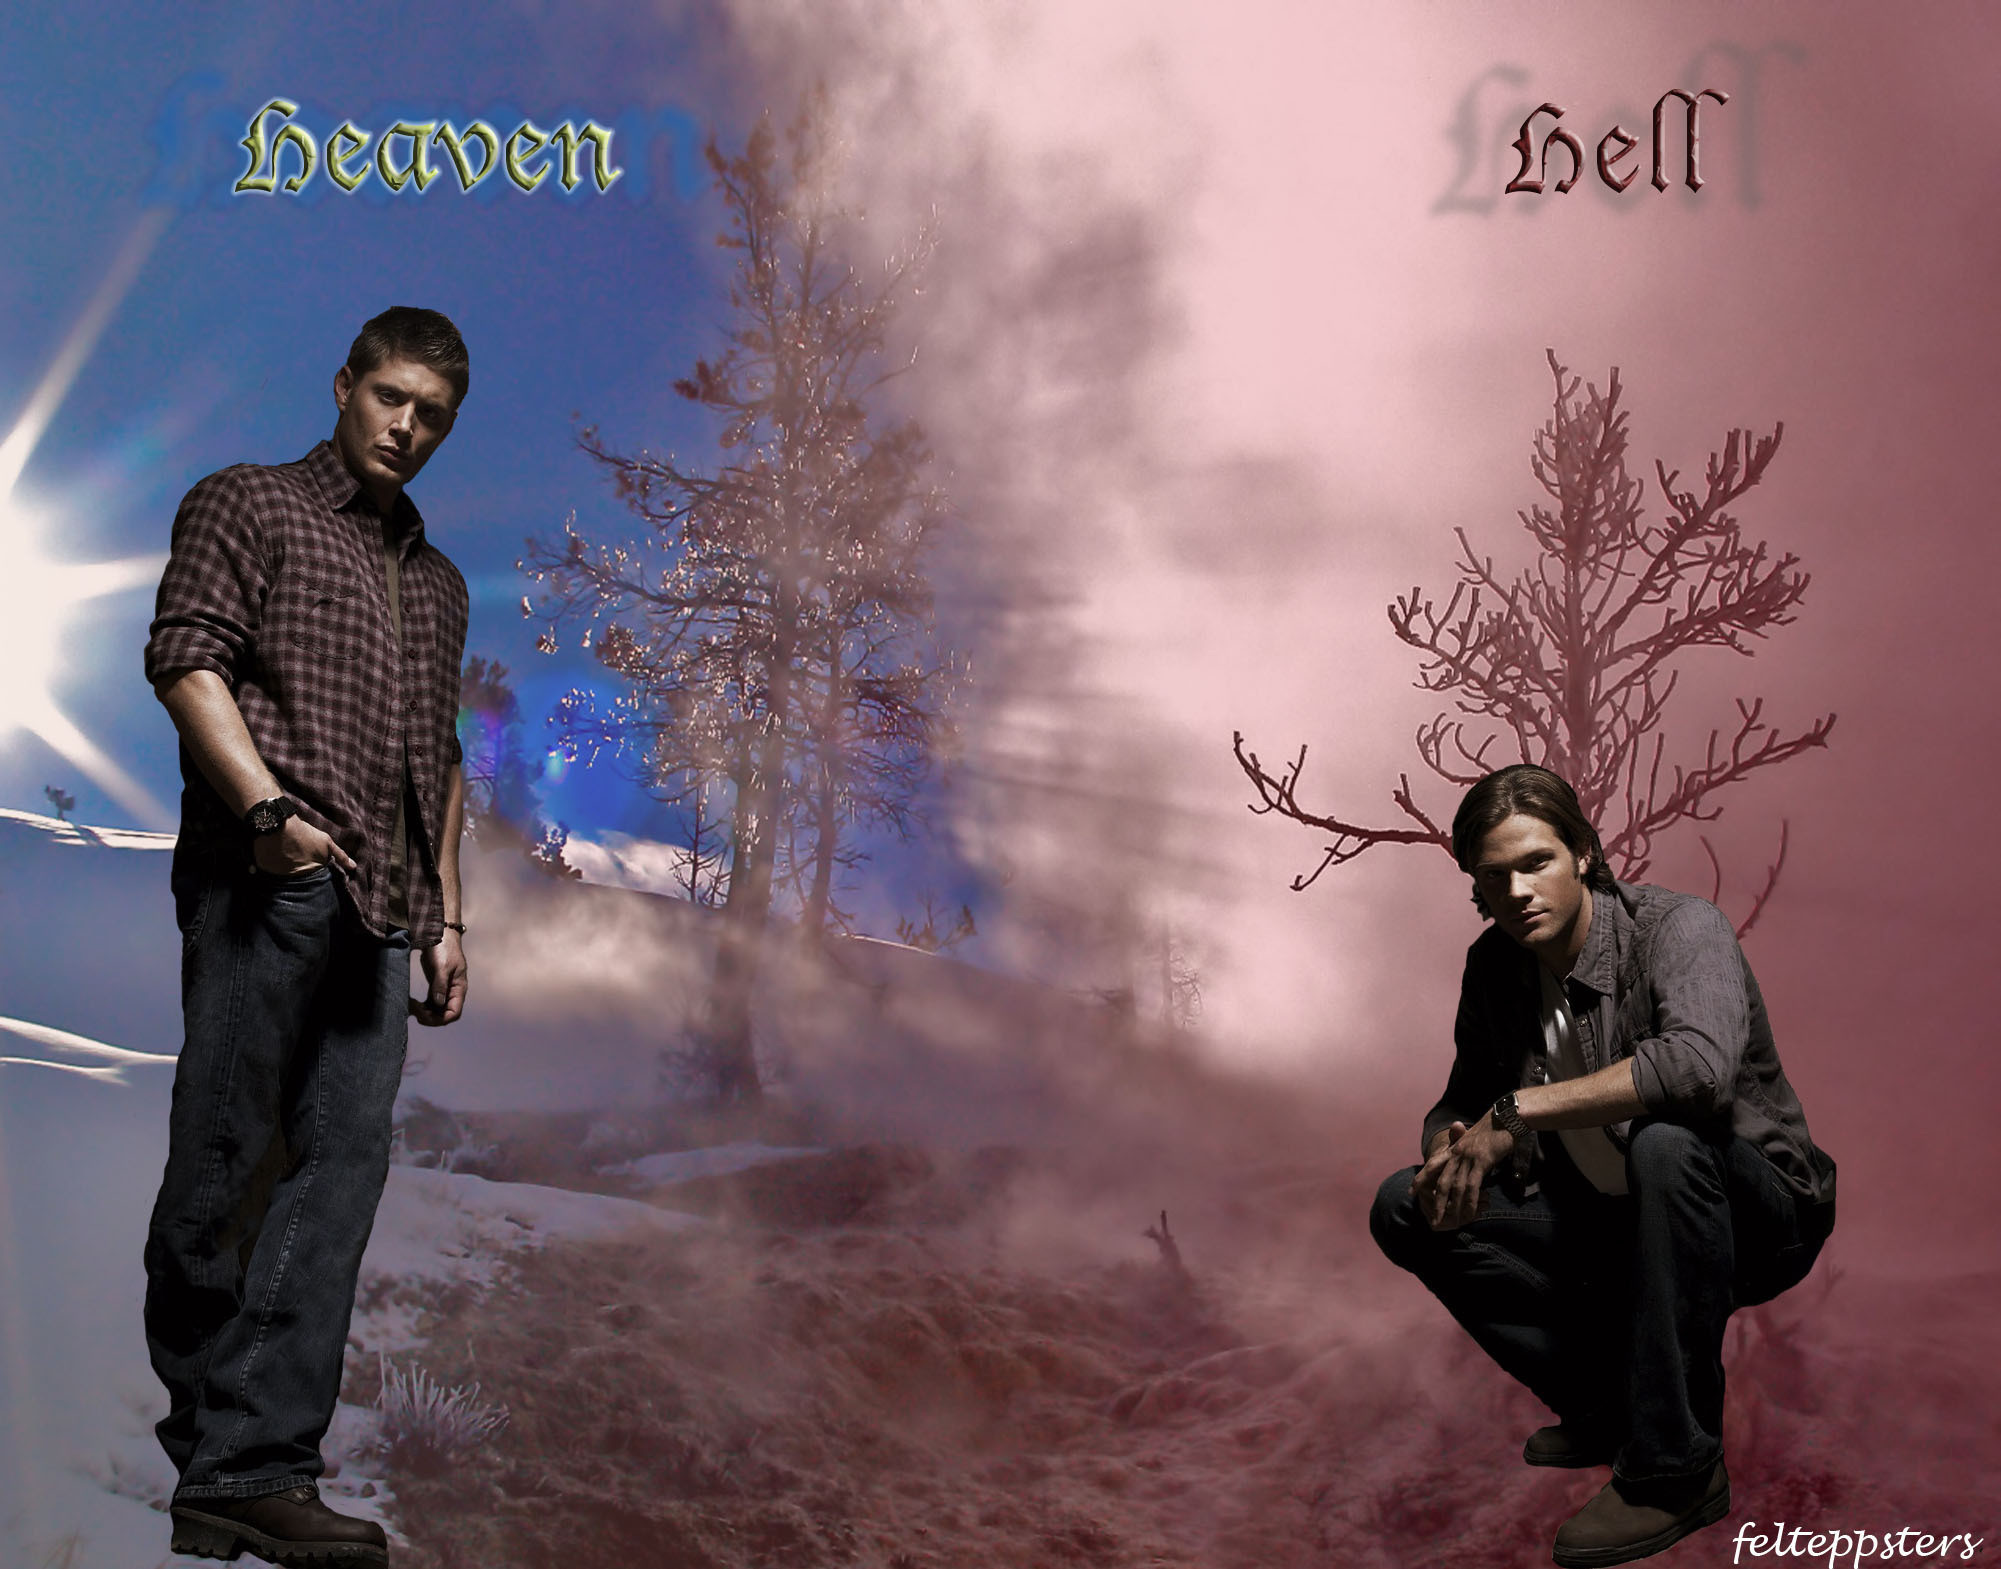 2001x1569 Supernatural images Heaven and Hell HD wallpaper and background photos .